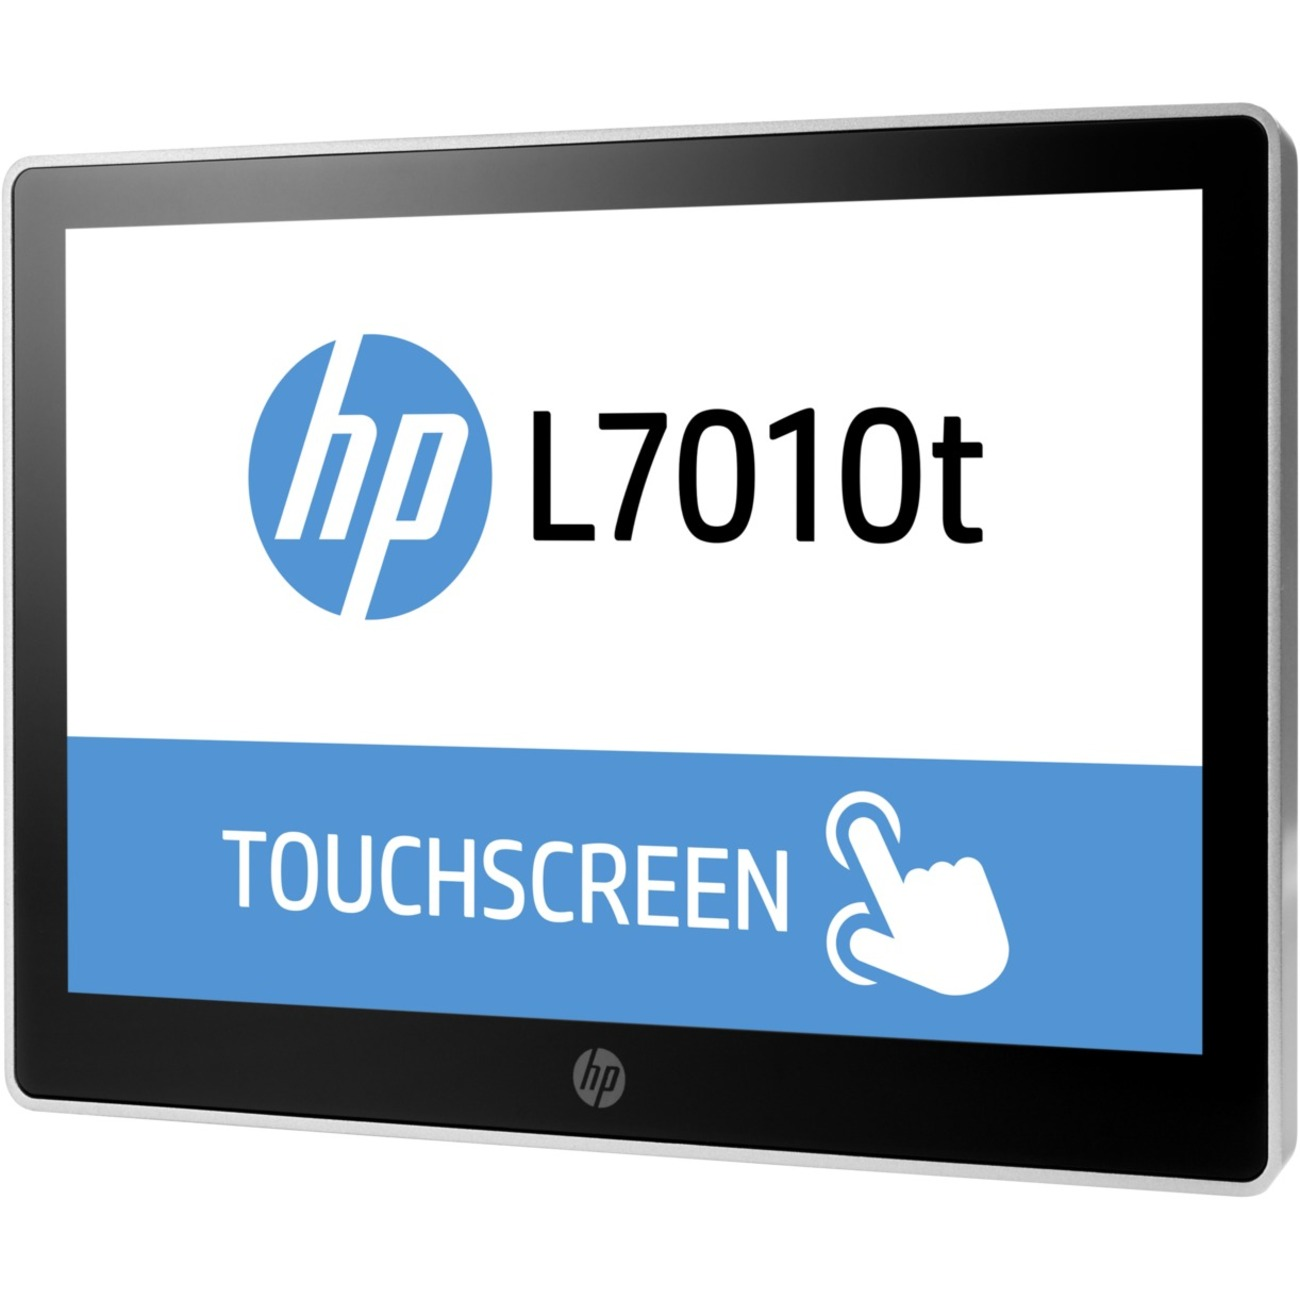 """HP L7010t 10.1"""" LCD Touchscreen Monitor - 16:9 - 30 ms_subImage_1"""